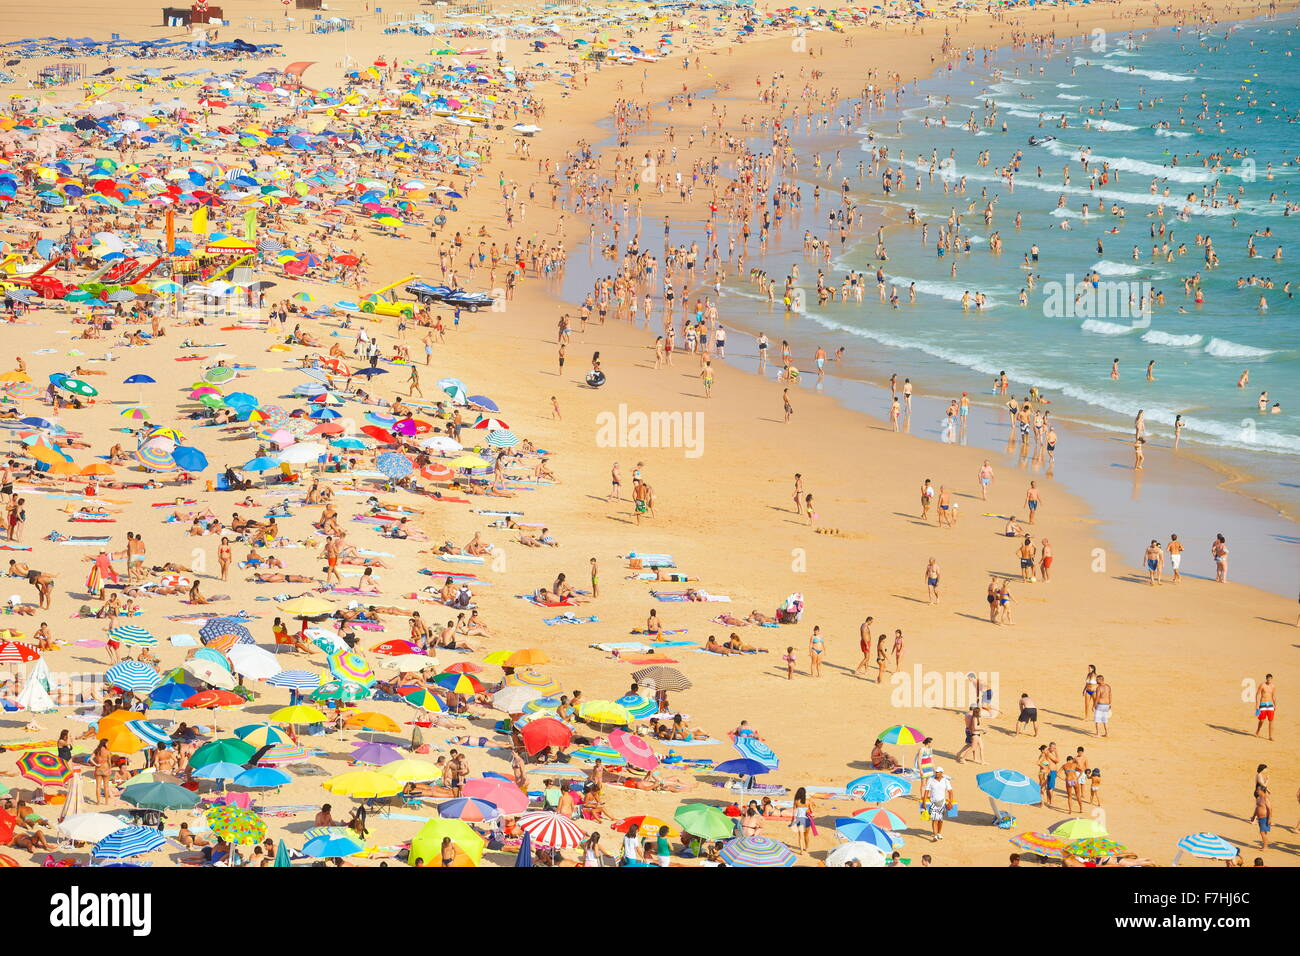 Rocha Beach, Portimao, Algarve coast, Portugal - Stock Image